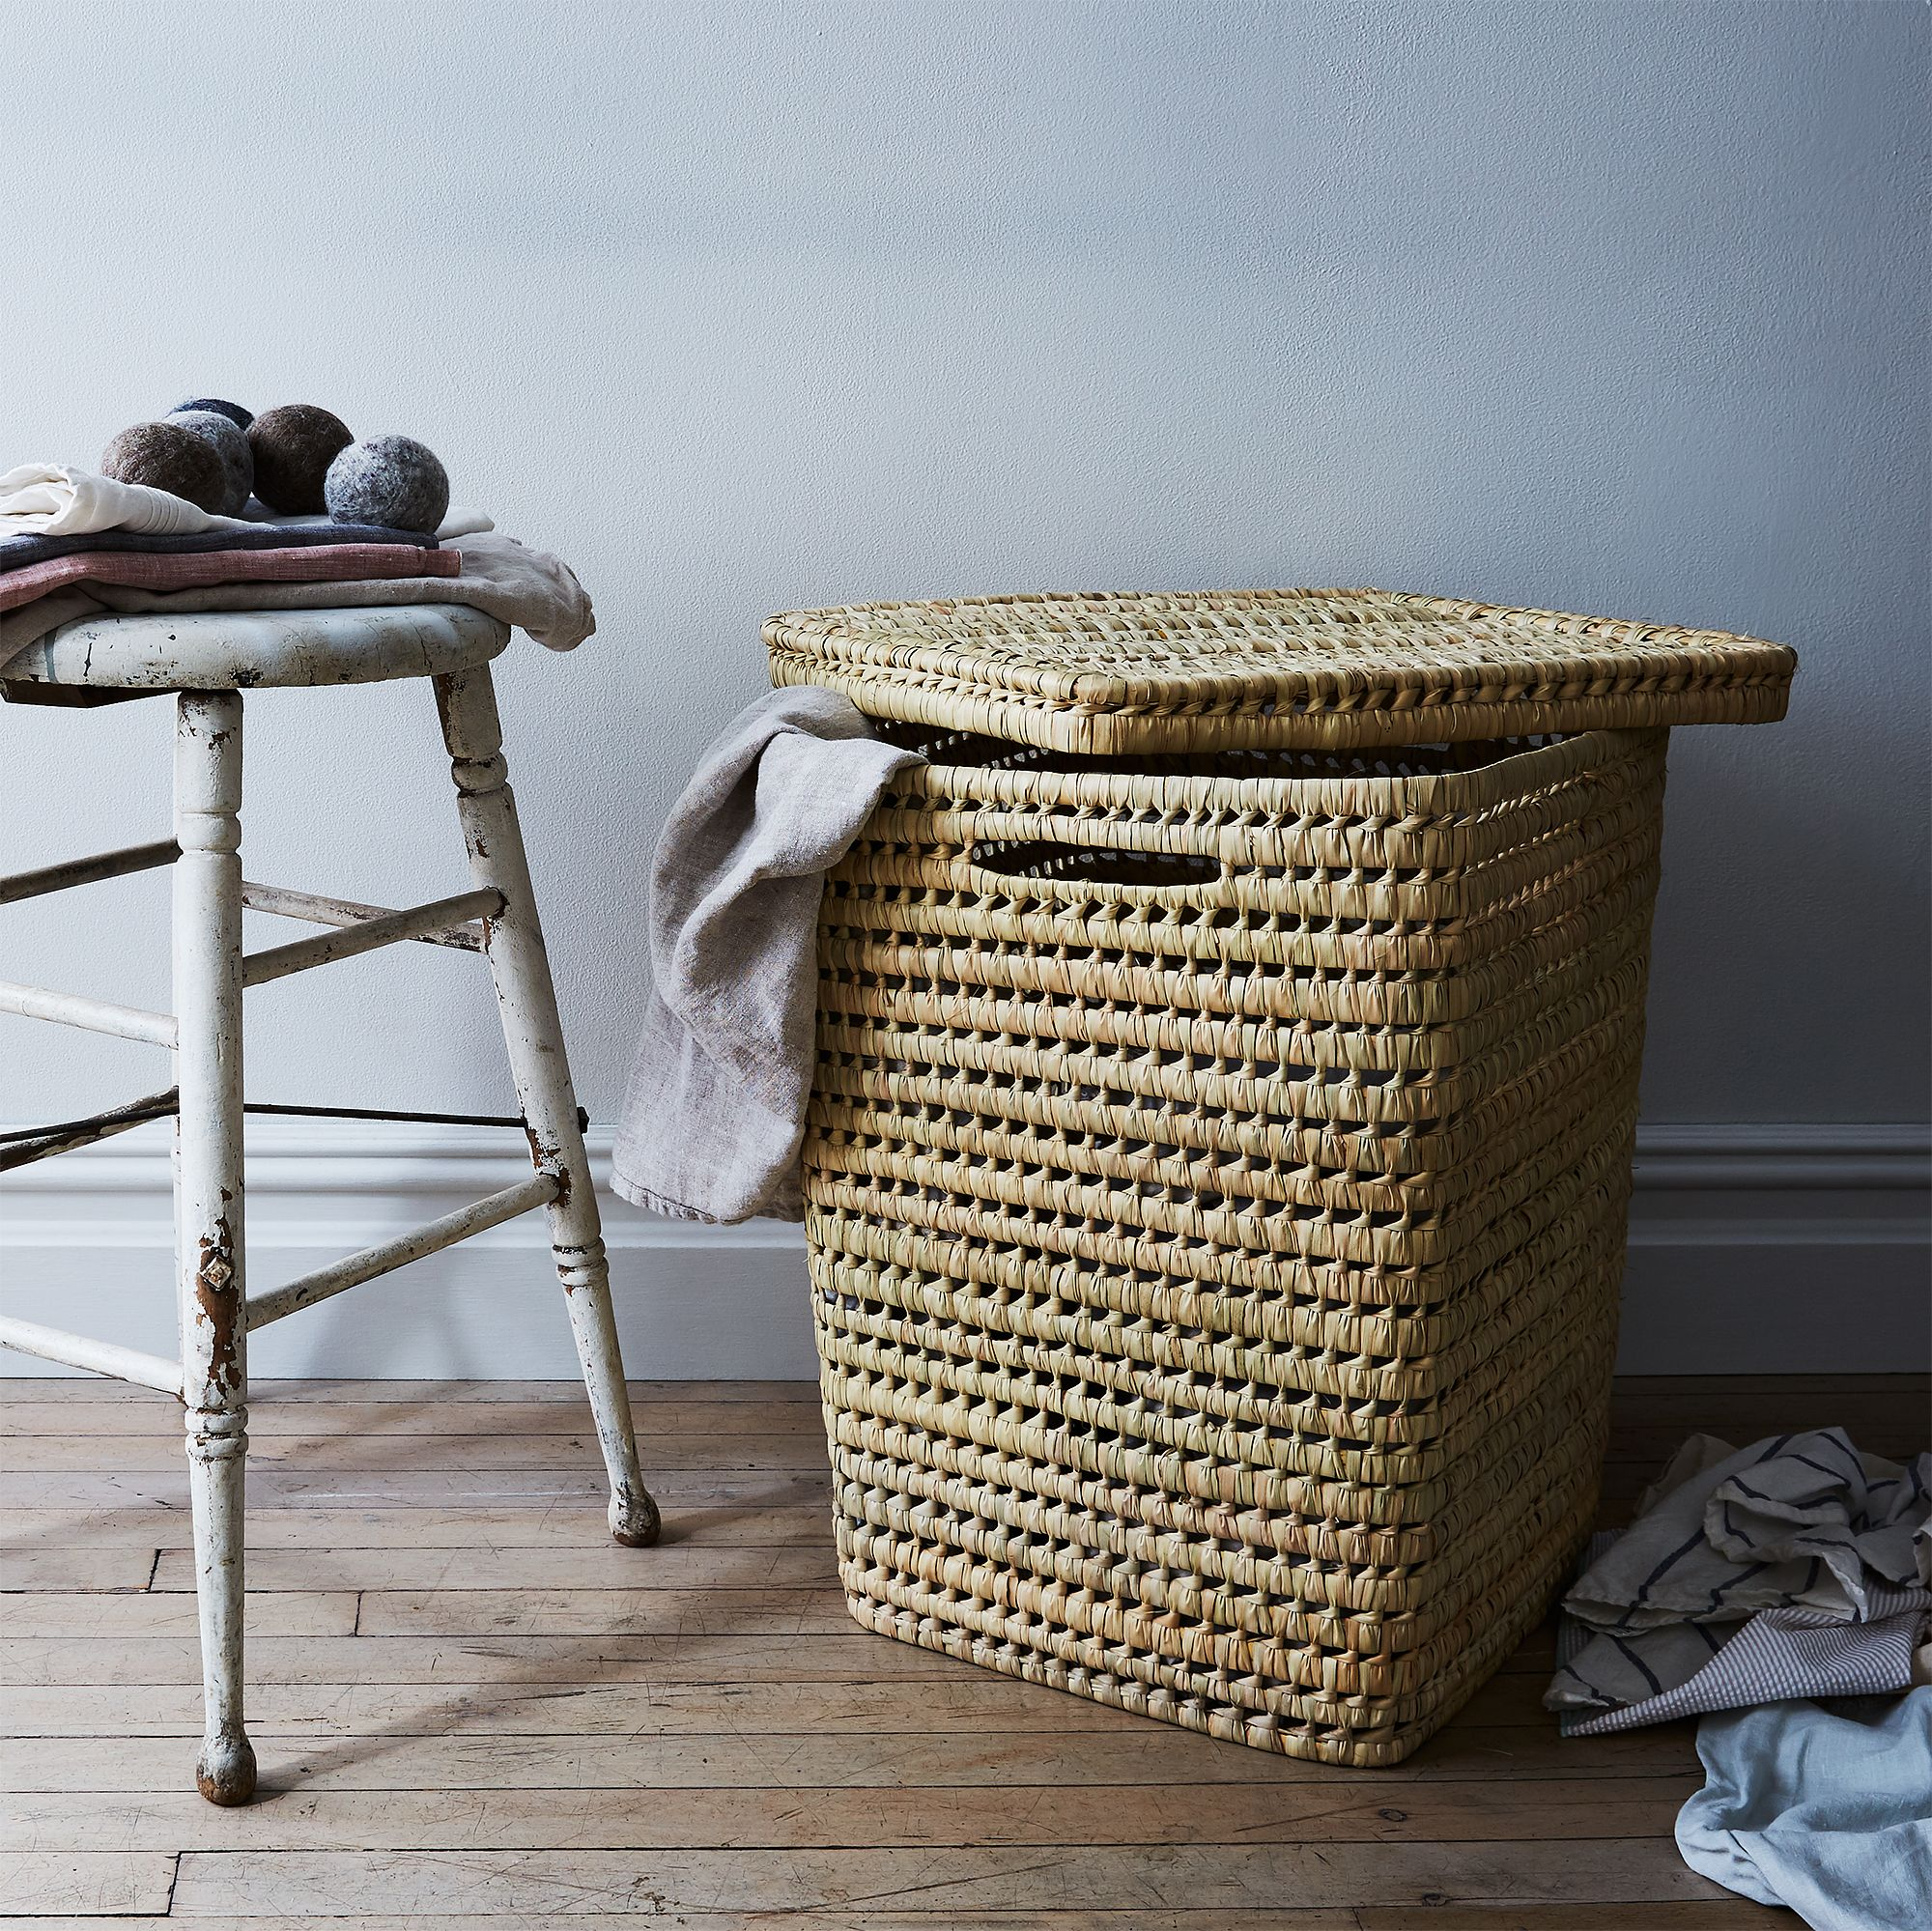 31249112 5d37 47f4 8cf3 76f1516cd308  2017 0605 hawkins new york food52 woven moroccan laundry baskets with lid mid bobbi lin 27746